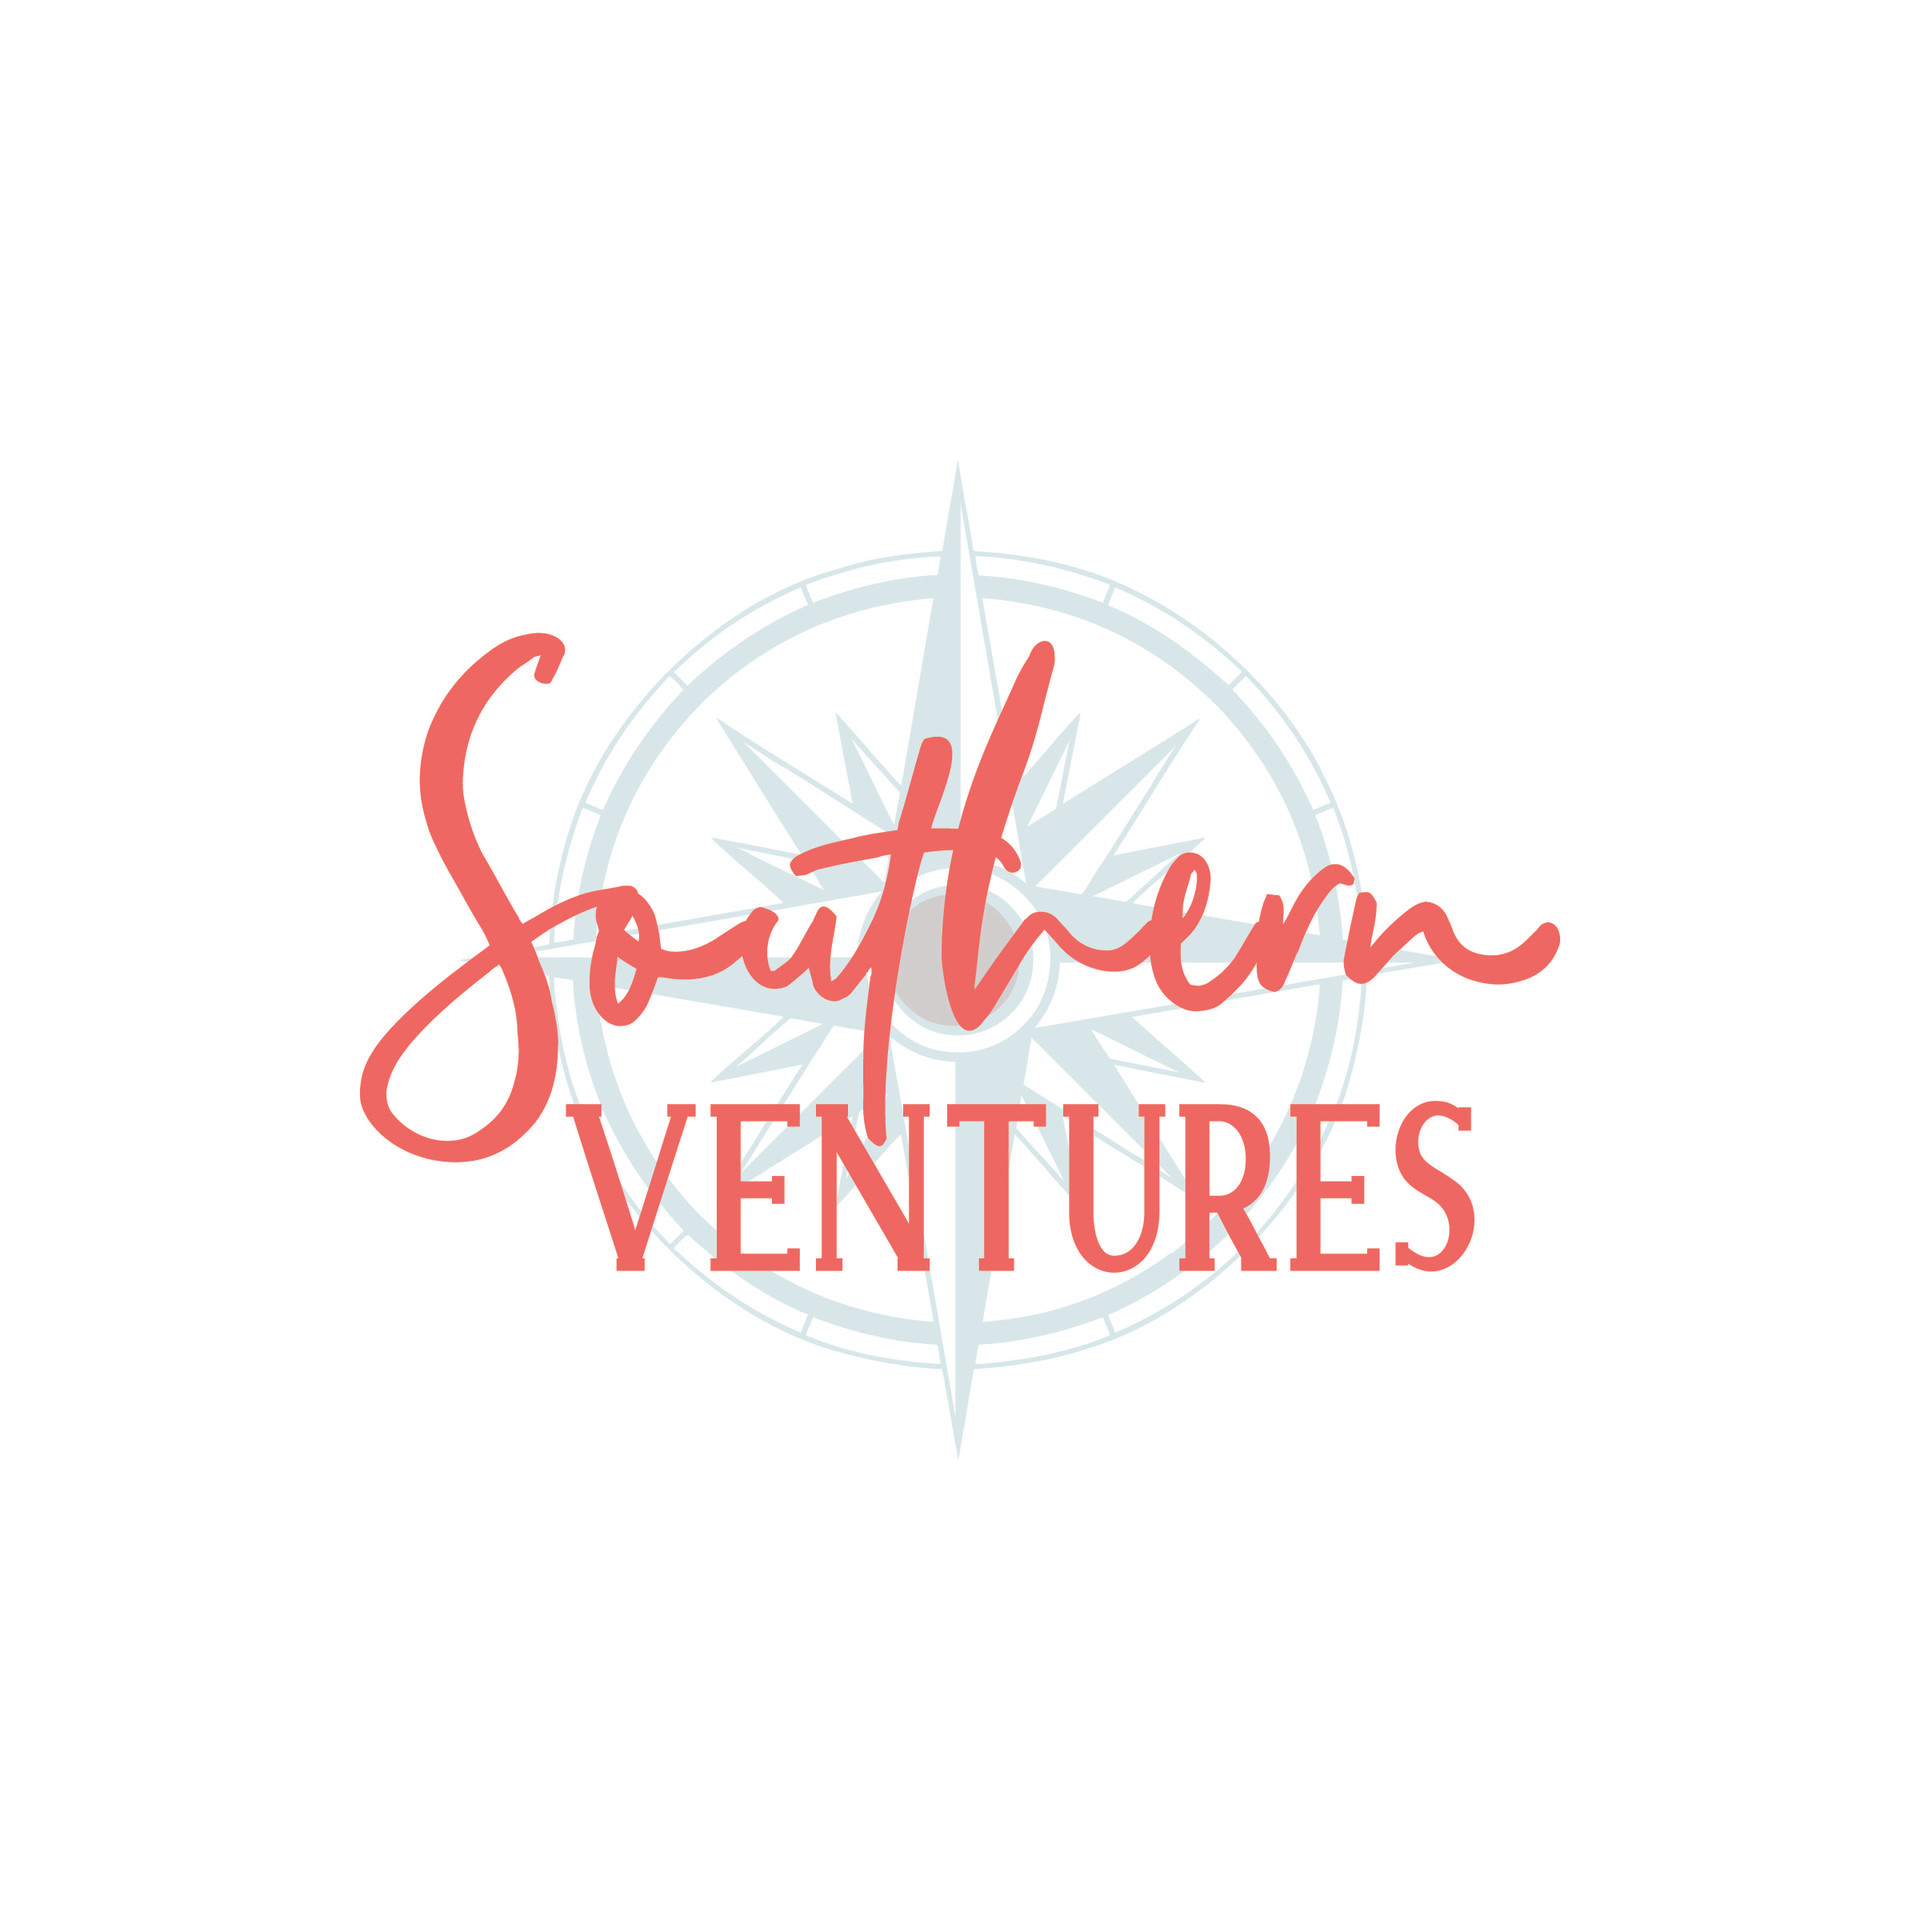 Southern Ventures